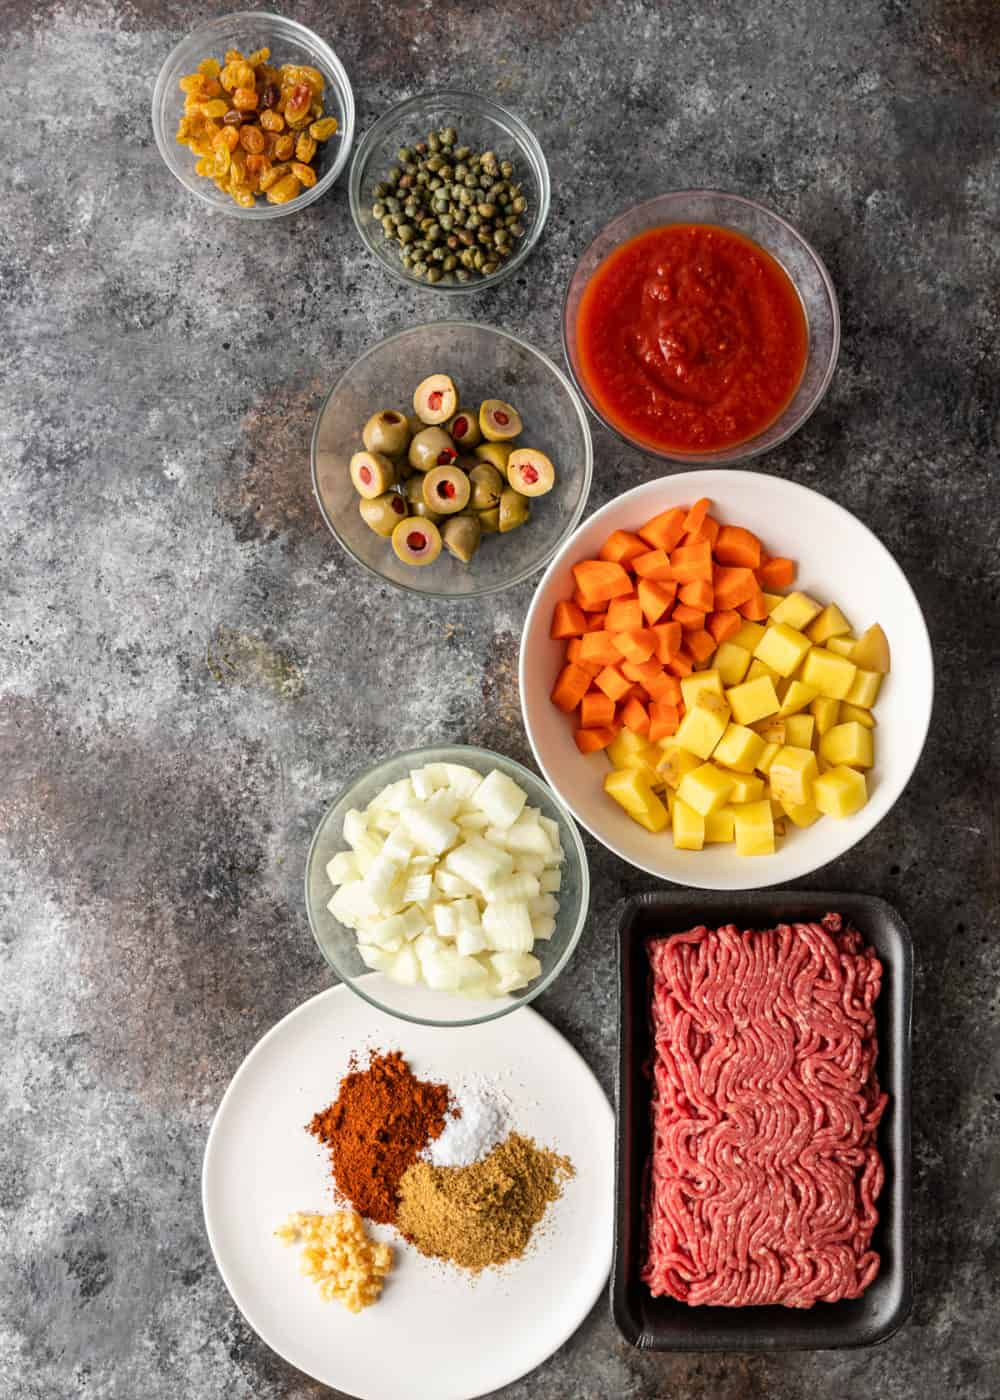 Ingredients for Beef Picadillo